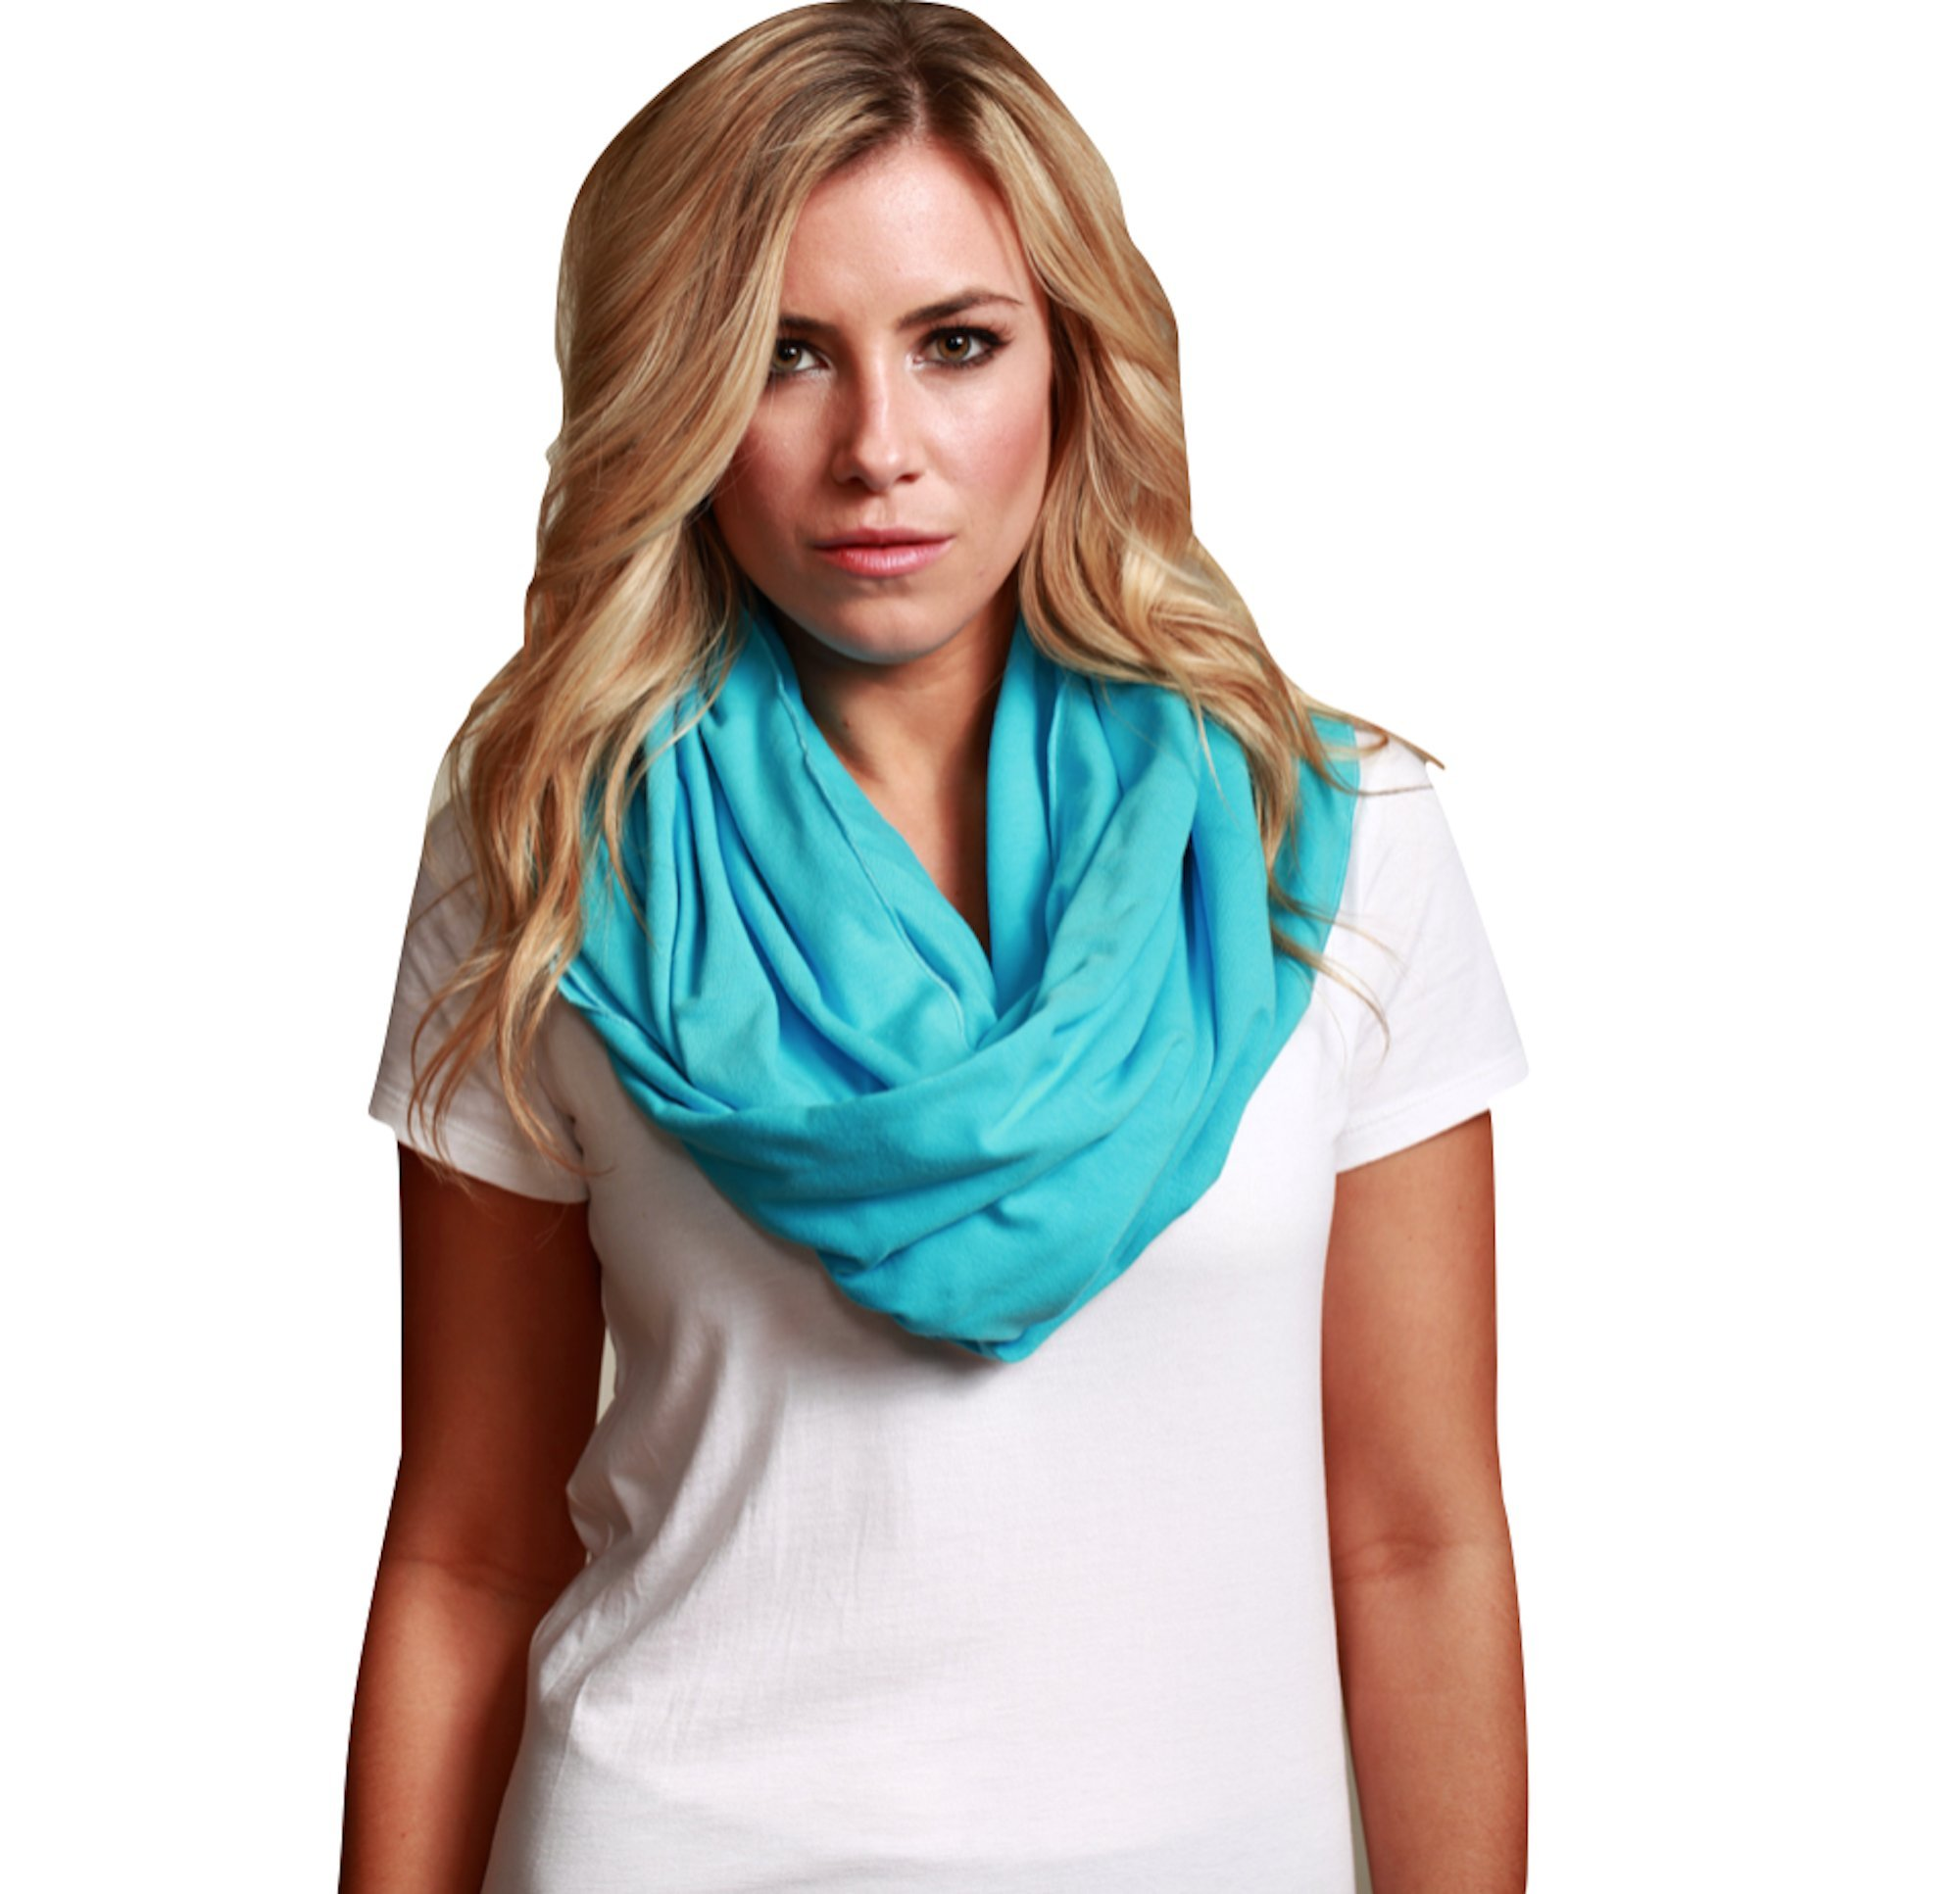 Sleeper Scarf 2-in-1 Travel Scarf and Inflatable Neck Pillow (Turquoise, Traditional Inflate) by Sleeper Scarf